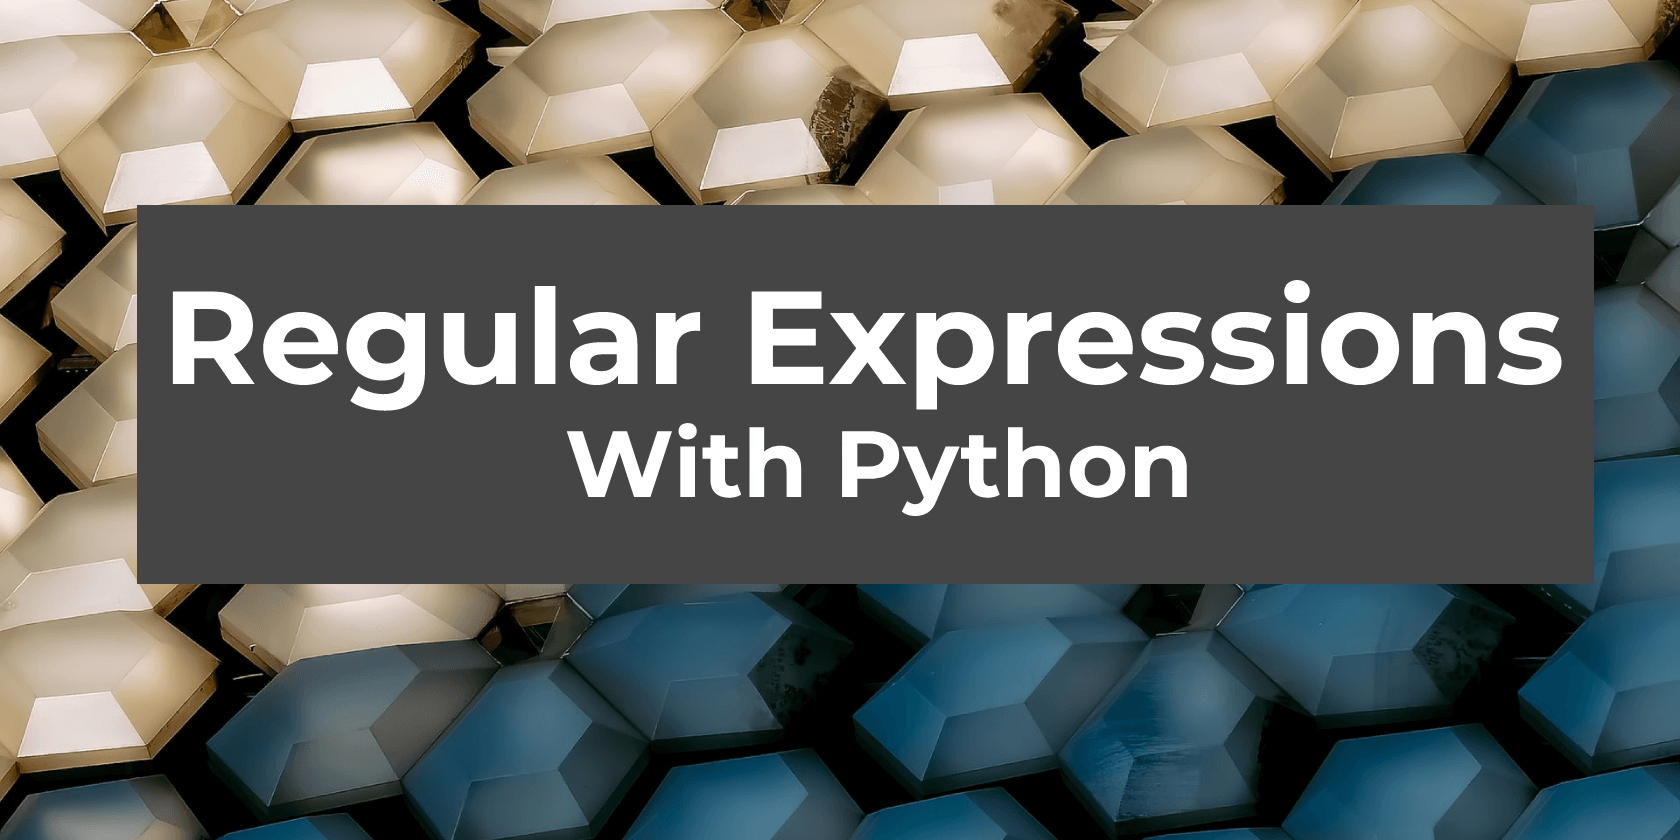 The Beginner's Guide to Regular Expressions With Python